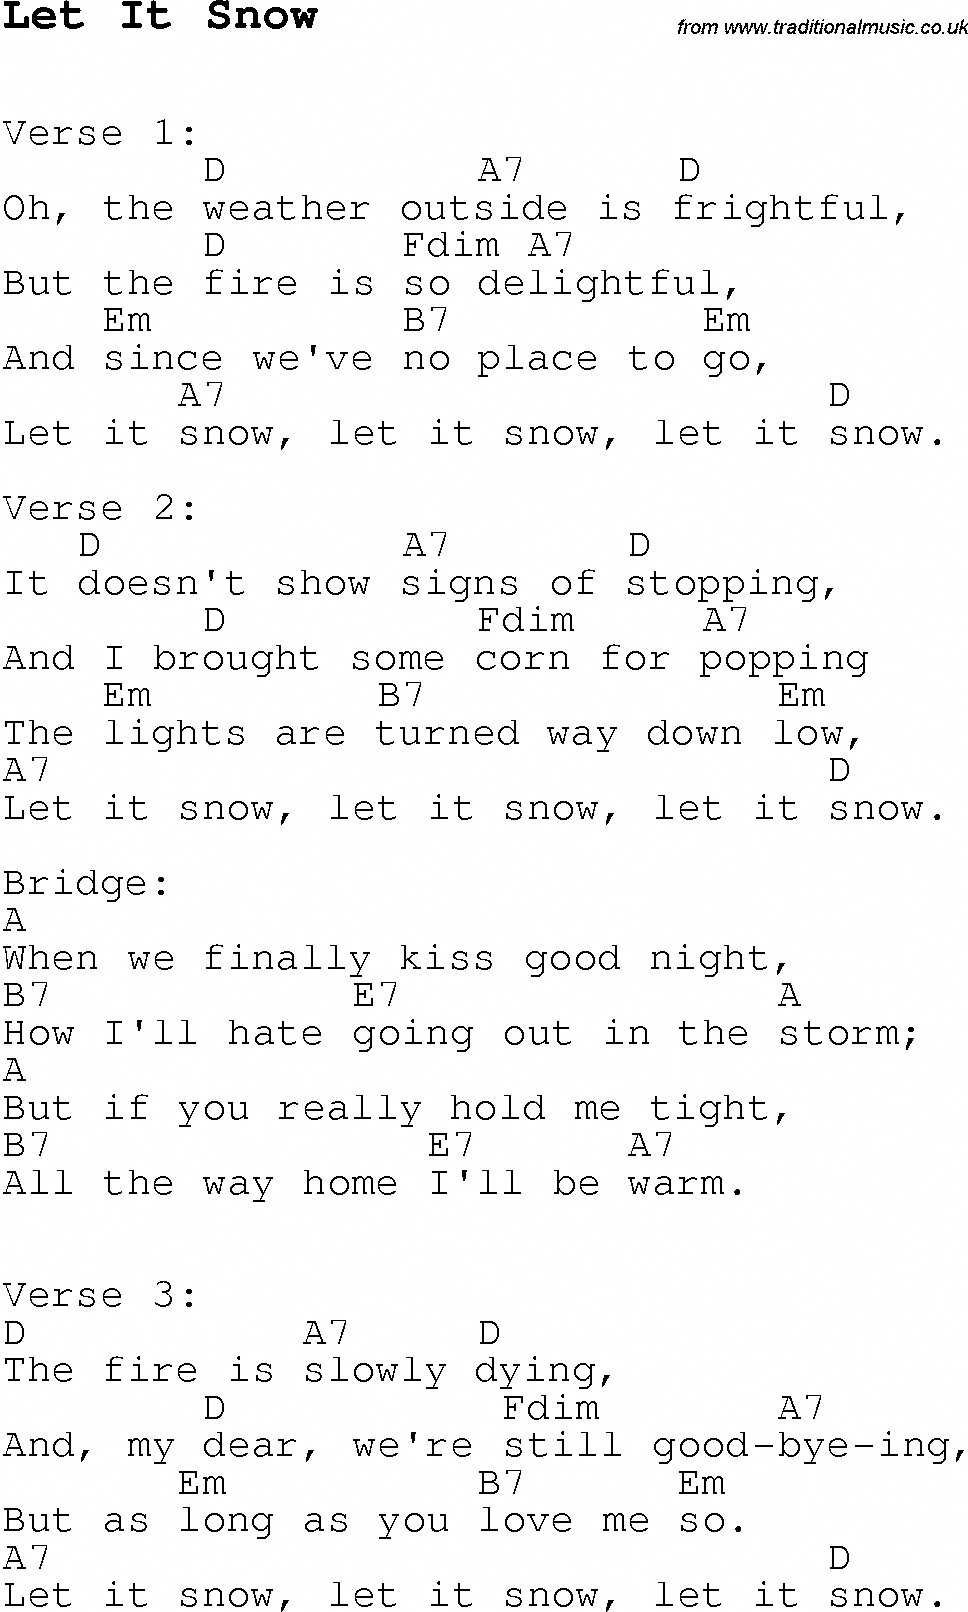 Christmas Songs And Carols Lyrics With Chords For Guitar Banjo For Let It Snow Teachyours Ukulele Chords Songs Christmas Ukulele Songs Christmas Songs Lyrics